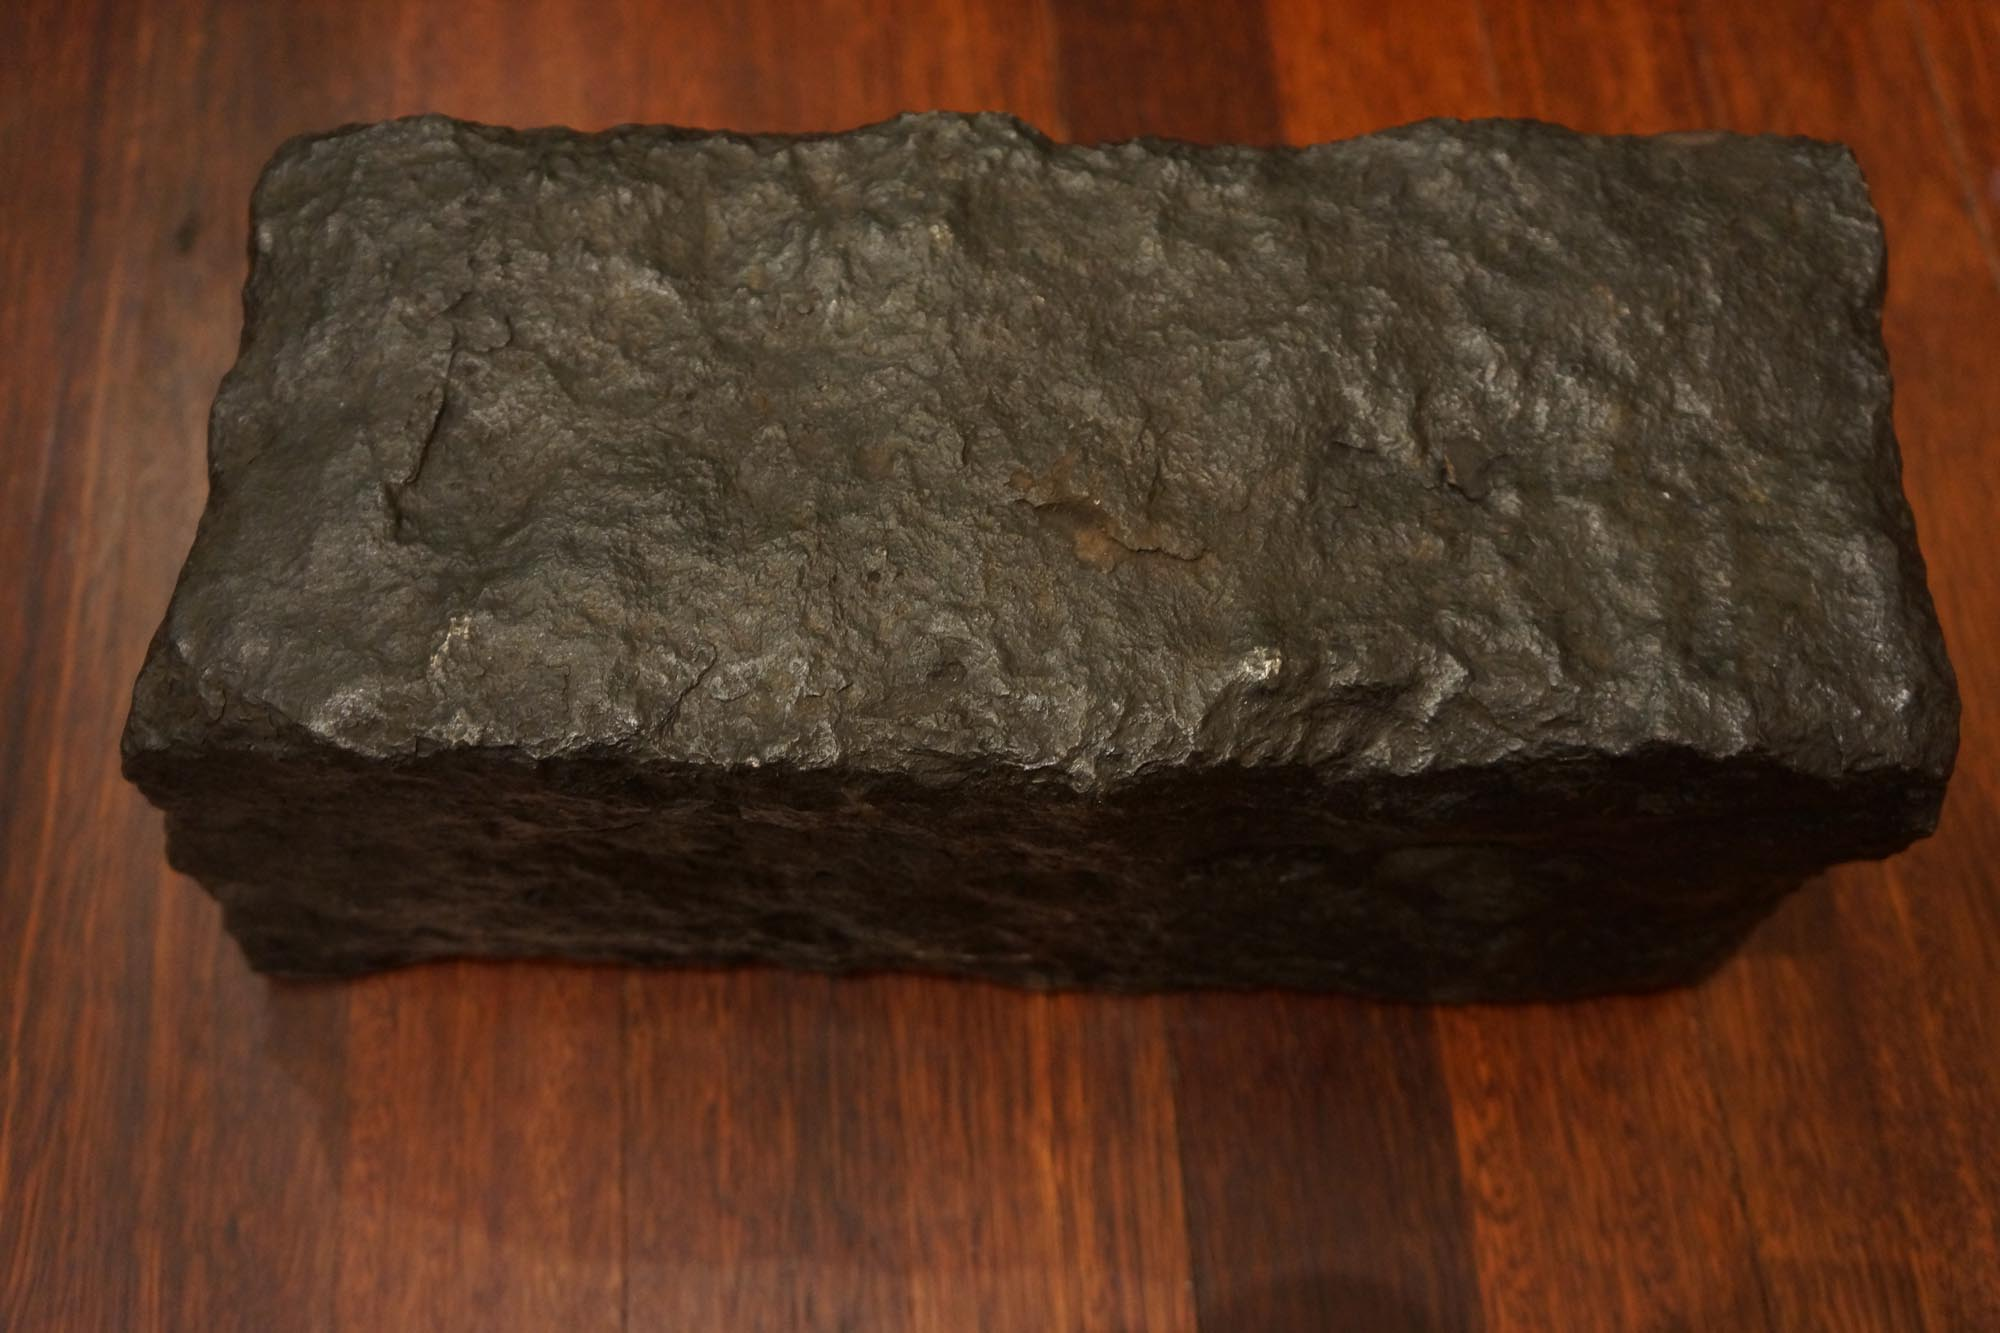 A piece of the Endeavour ballast in the Silentworld Foundation Collection. Image credit: Silentworld Foundation, 2021.